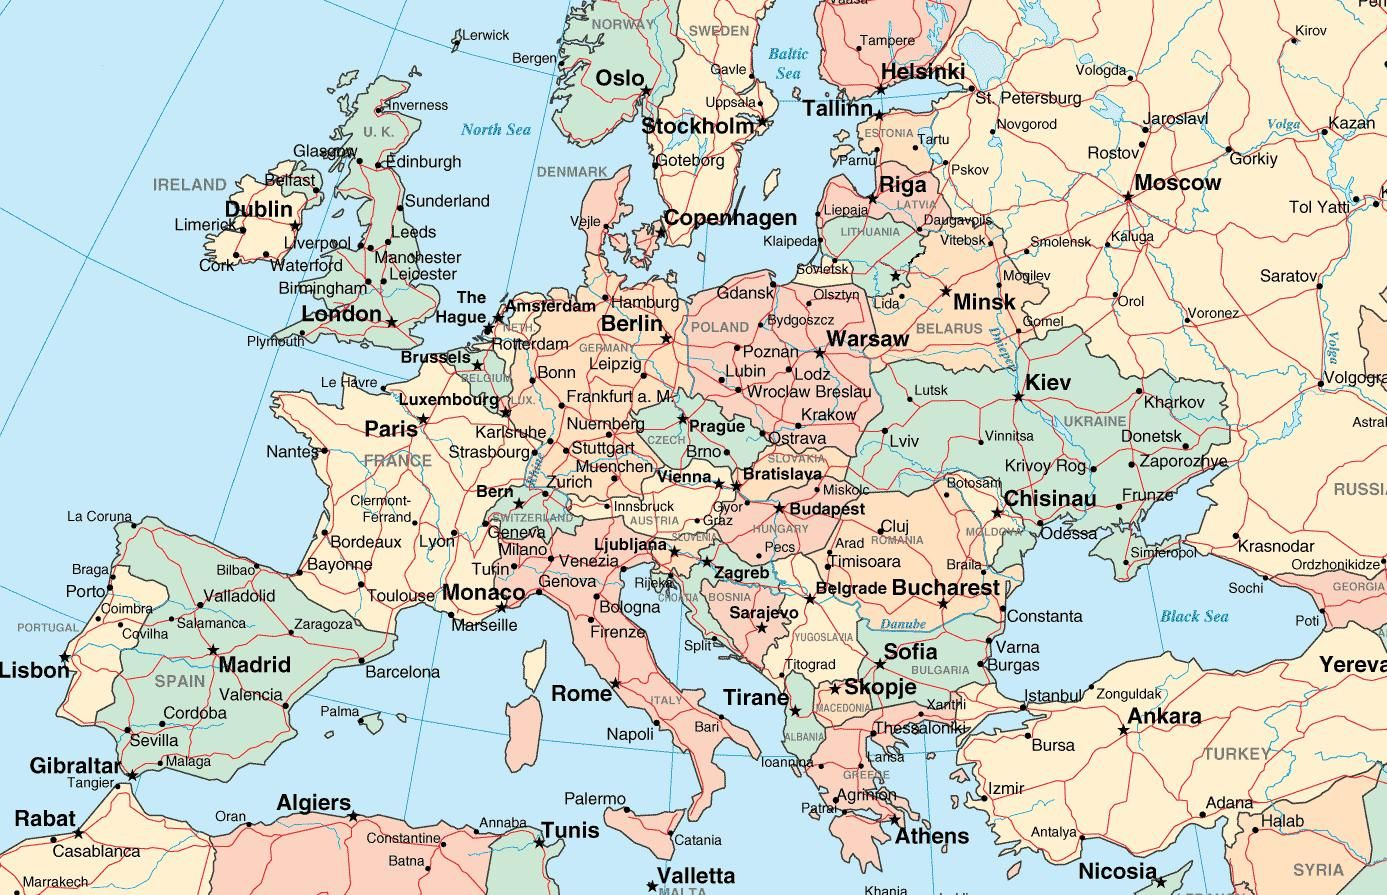 Europe Cities Map Uptowncritters And City | Kostenlos, Der ...